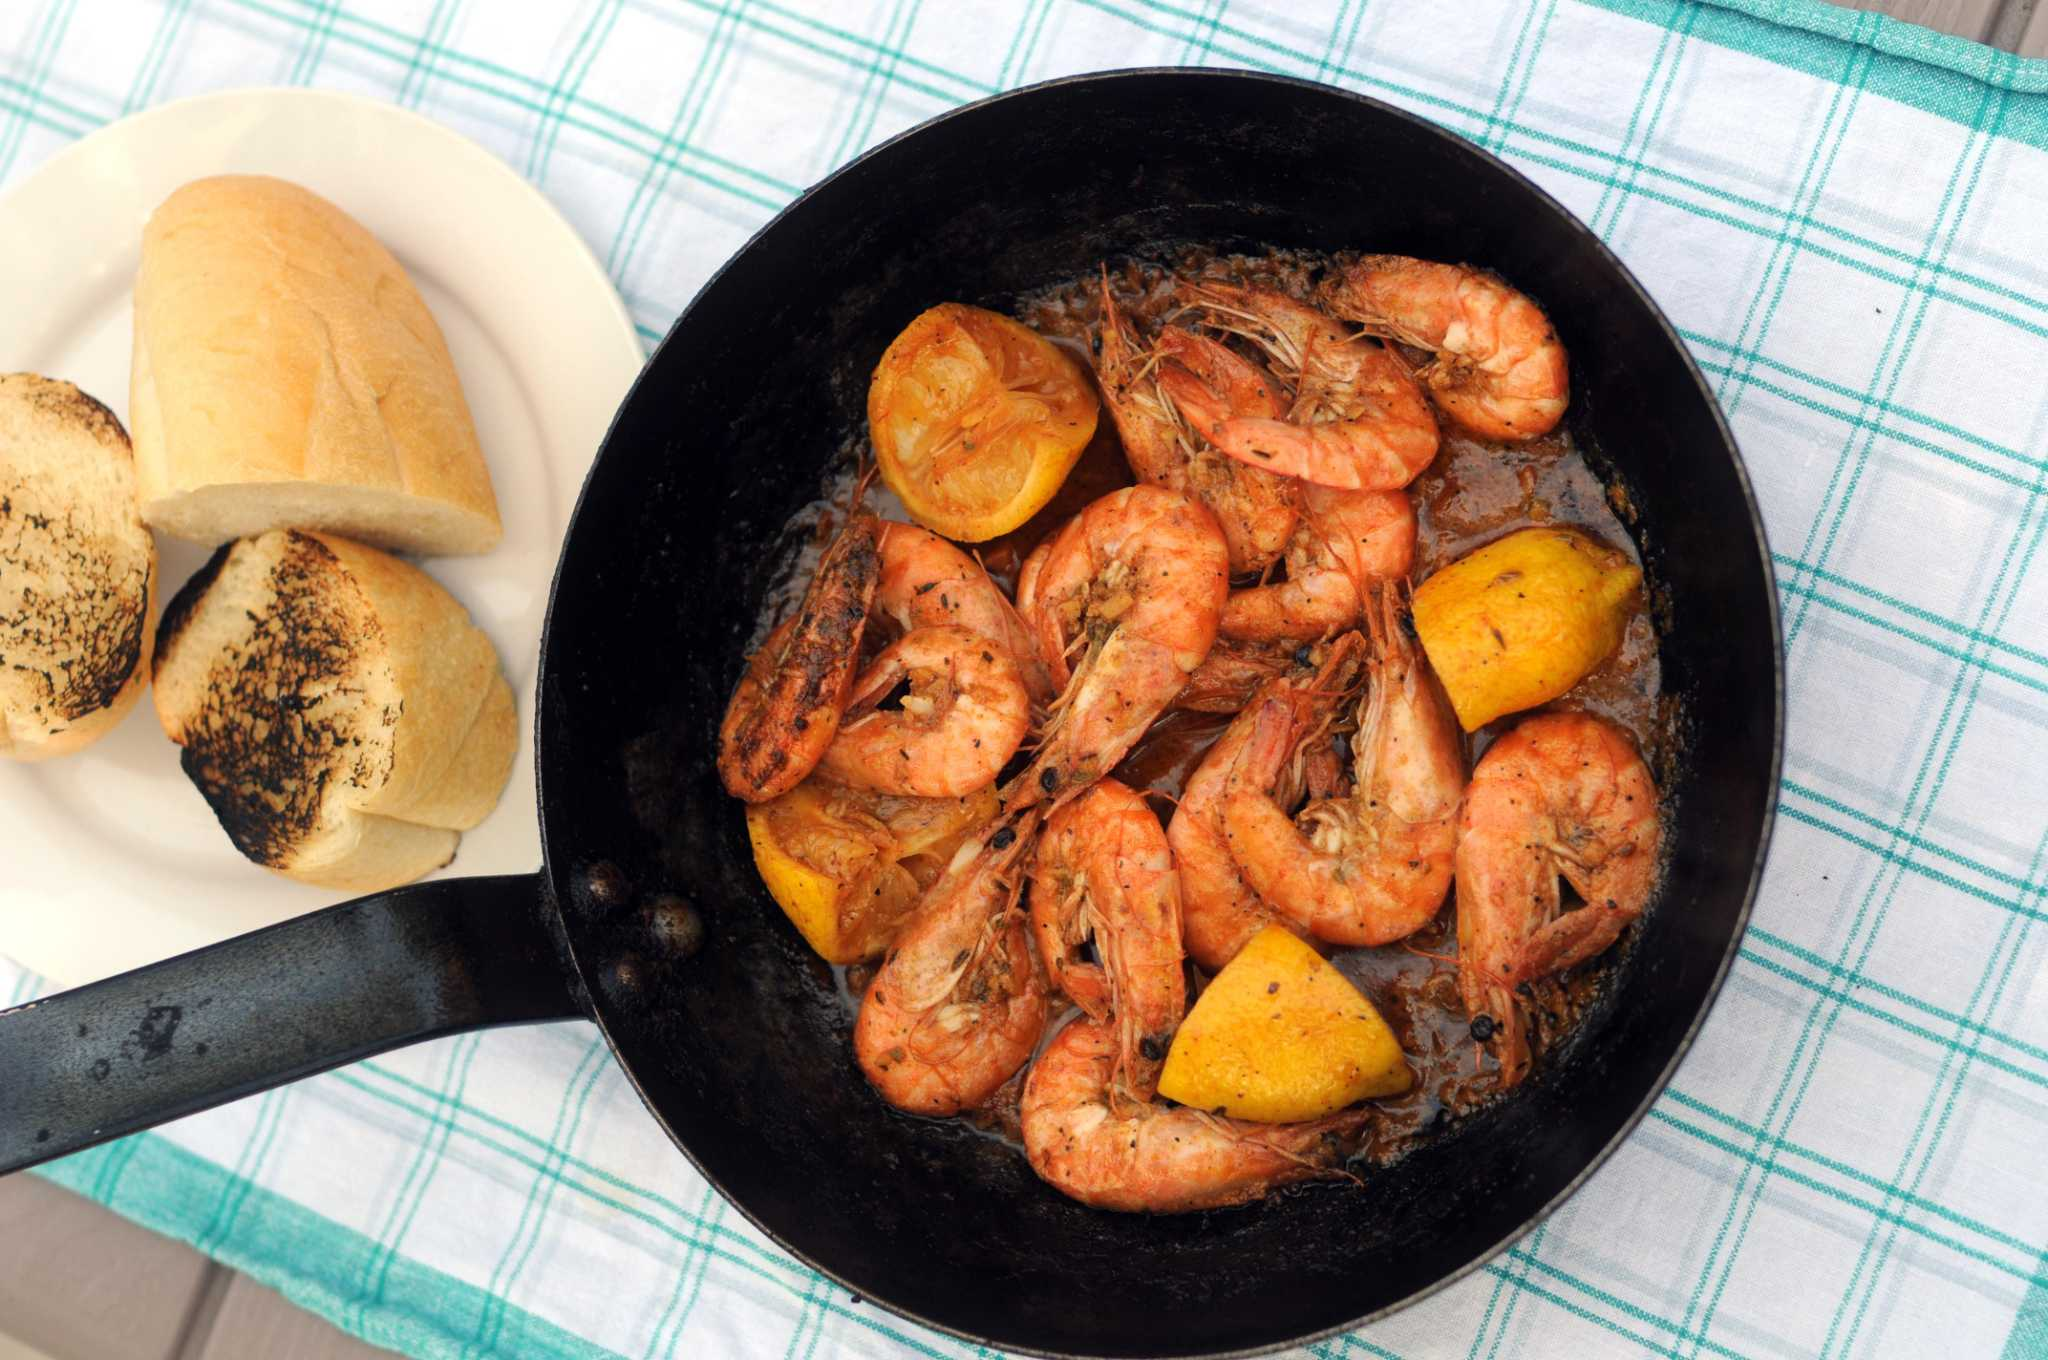 Recipe: Commander's Palace New Orleans-Style Barbecue Shrimp